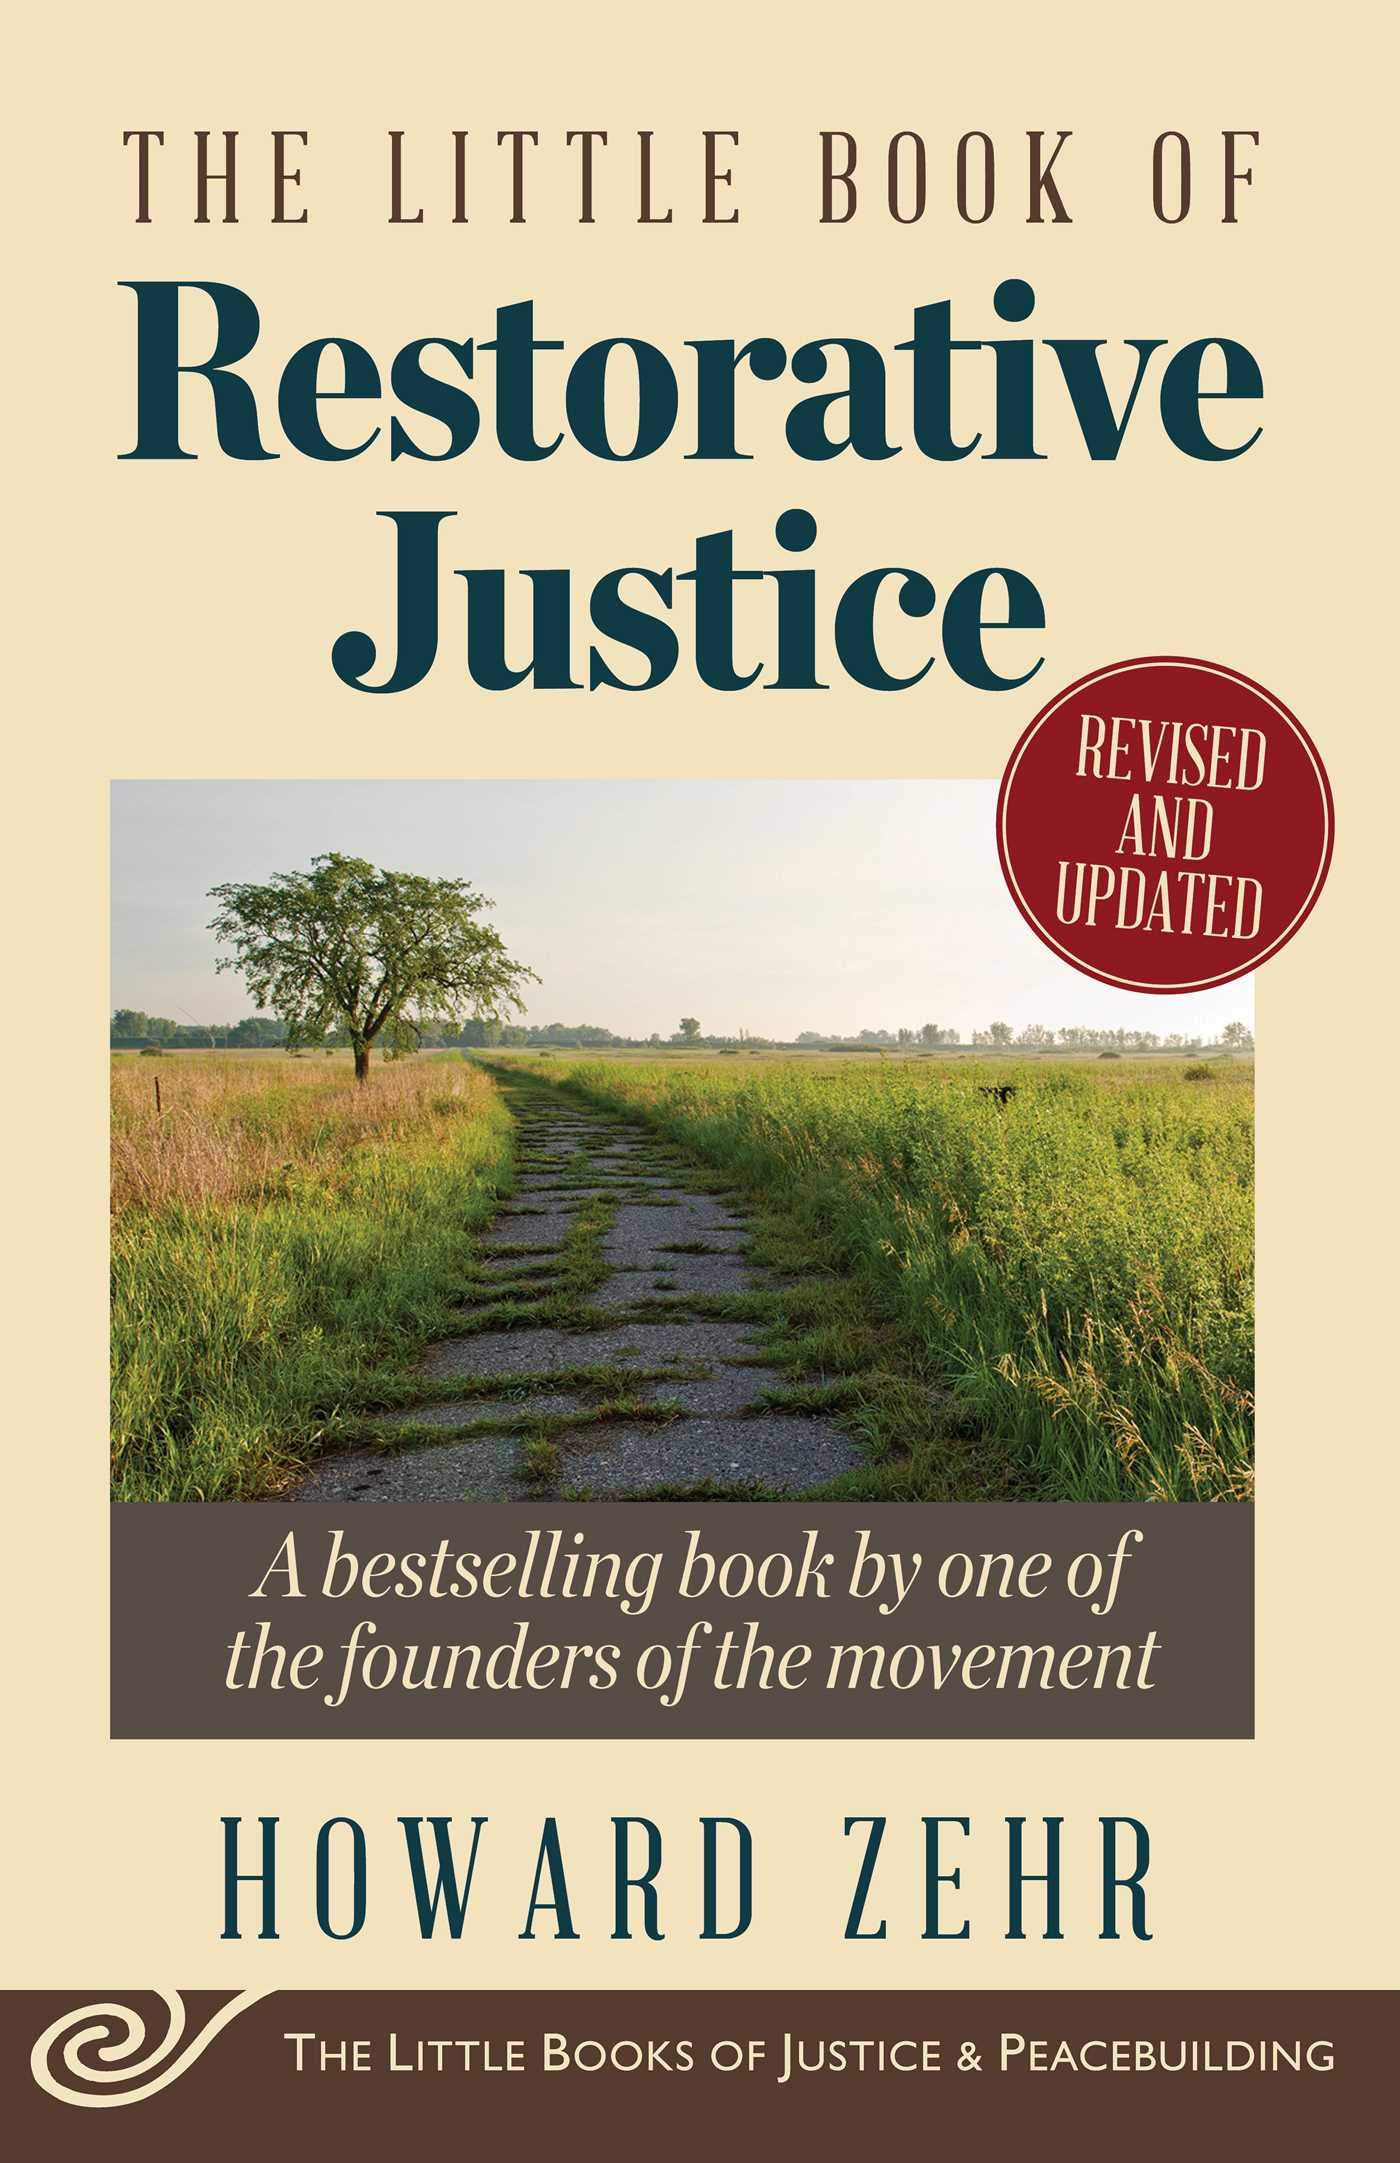 The Little Book of Restorative Justice: Revised and Updated (Justice and  Peacebuilding): Zehr, Howard: 9781561488230: Amazon.com: Books